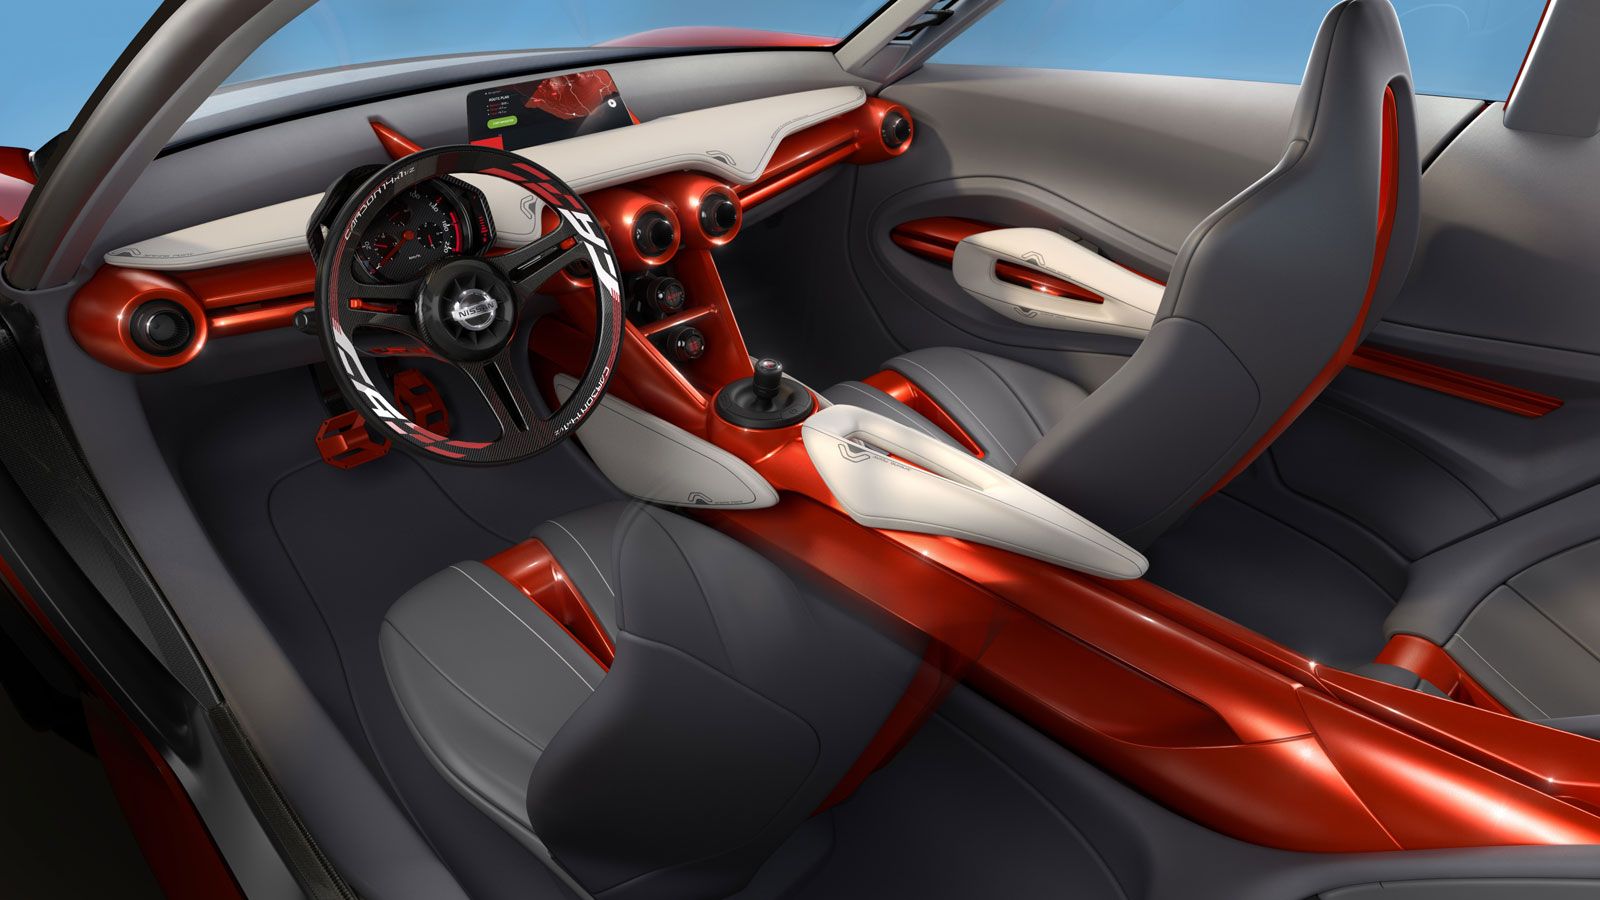 Nissan Gripz Concept Interior - Car Body Design